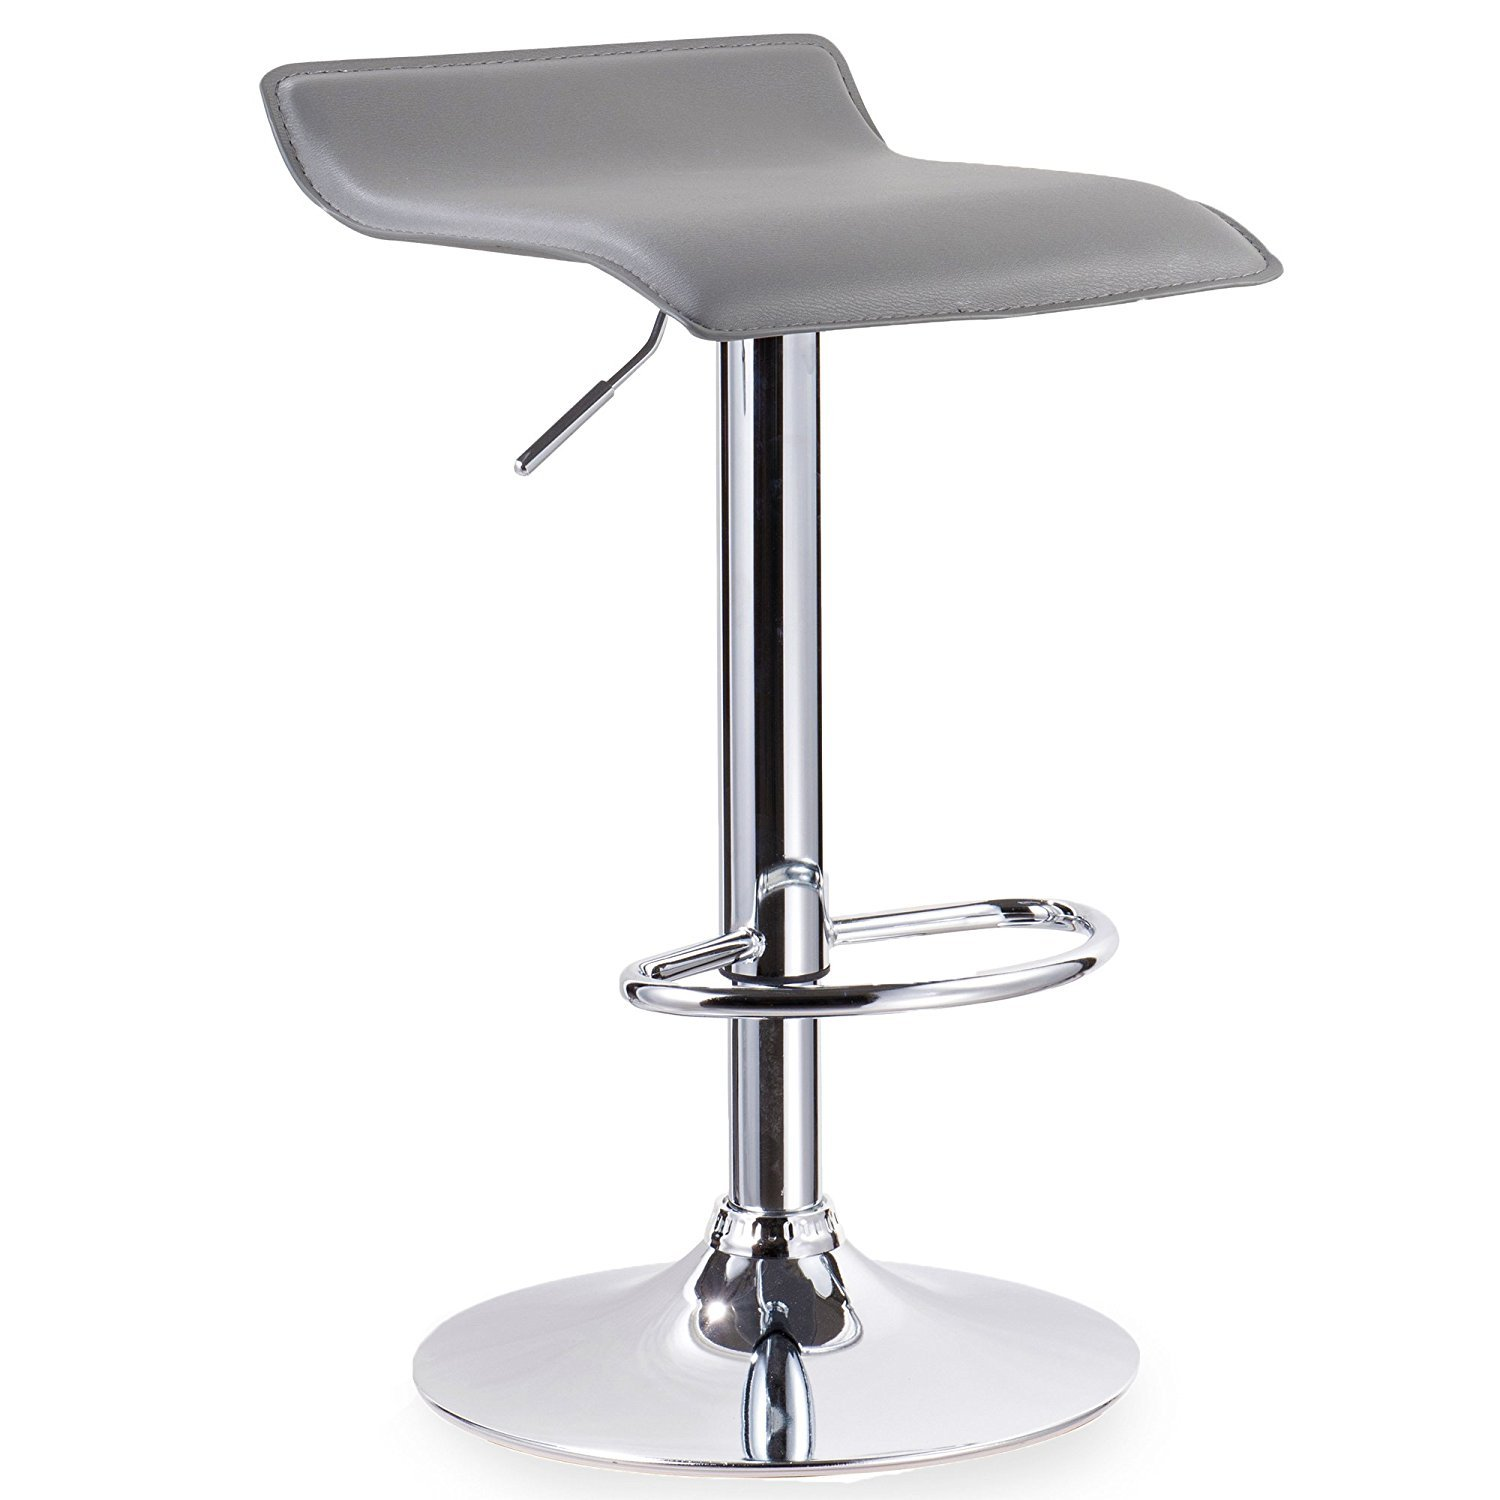 Leick Furniture 10042GR Adjustable Swivel Stool-Set of 2 Bar, Gray by Leick Furniture